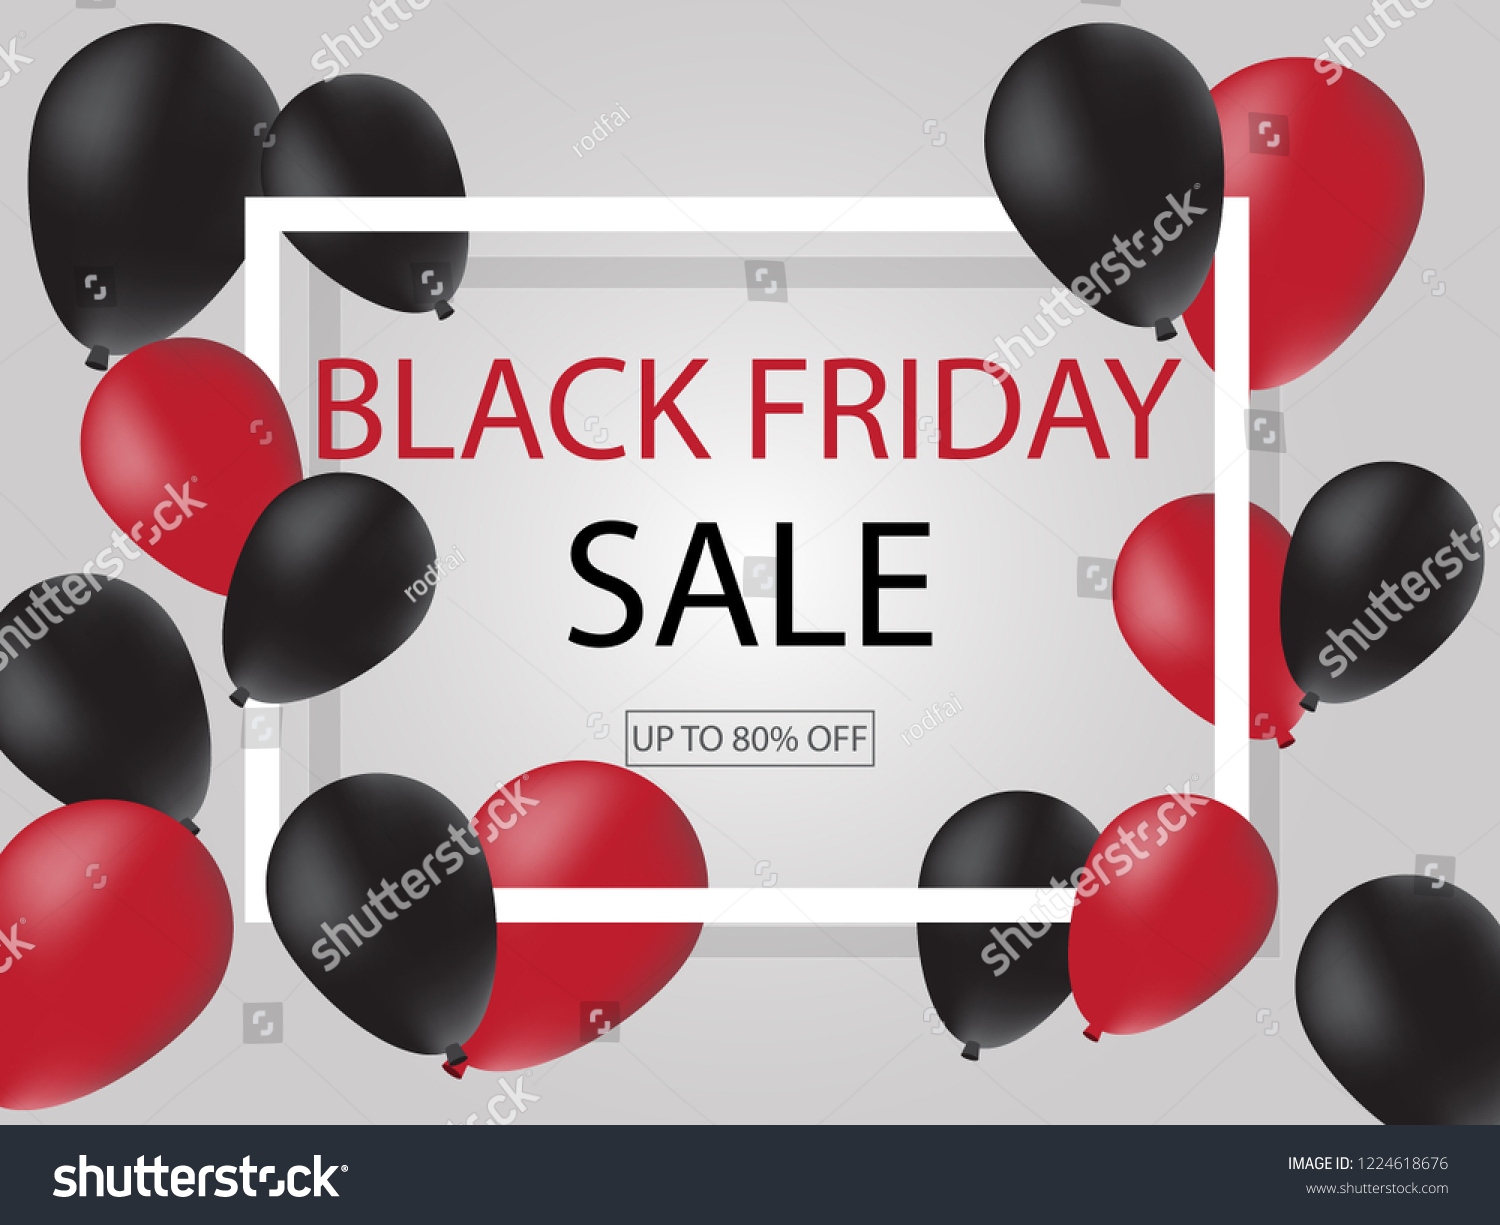 Black Friday Specials Black Friday Special Sale Can Be Stock Vektorgrafik Lizenzfrei